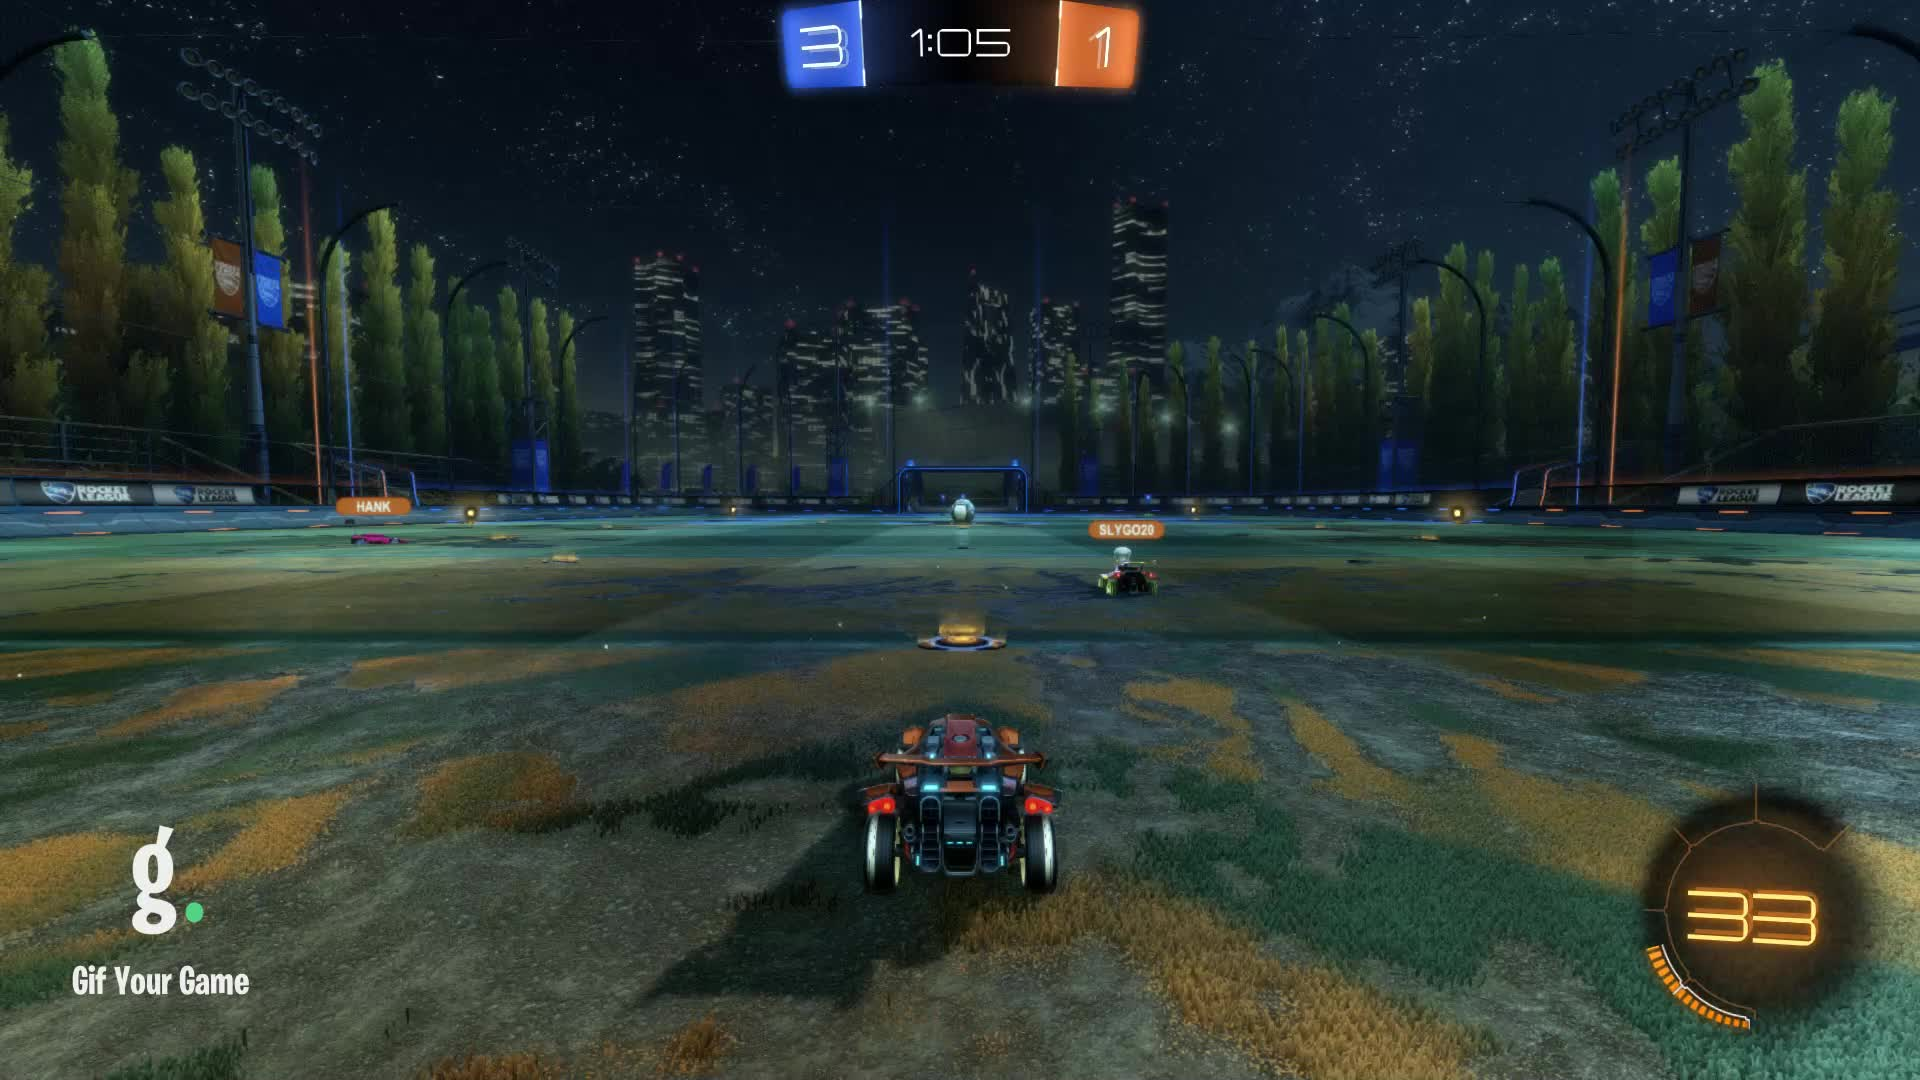 Gif Your Game, GifYourGame, ItWas...Justified, Rocket League, RocketLeague, Save, Save 8: ItWas...Justified GIFs